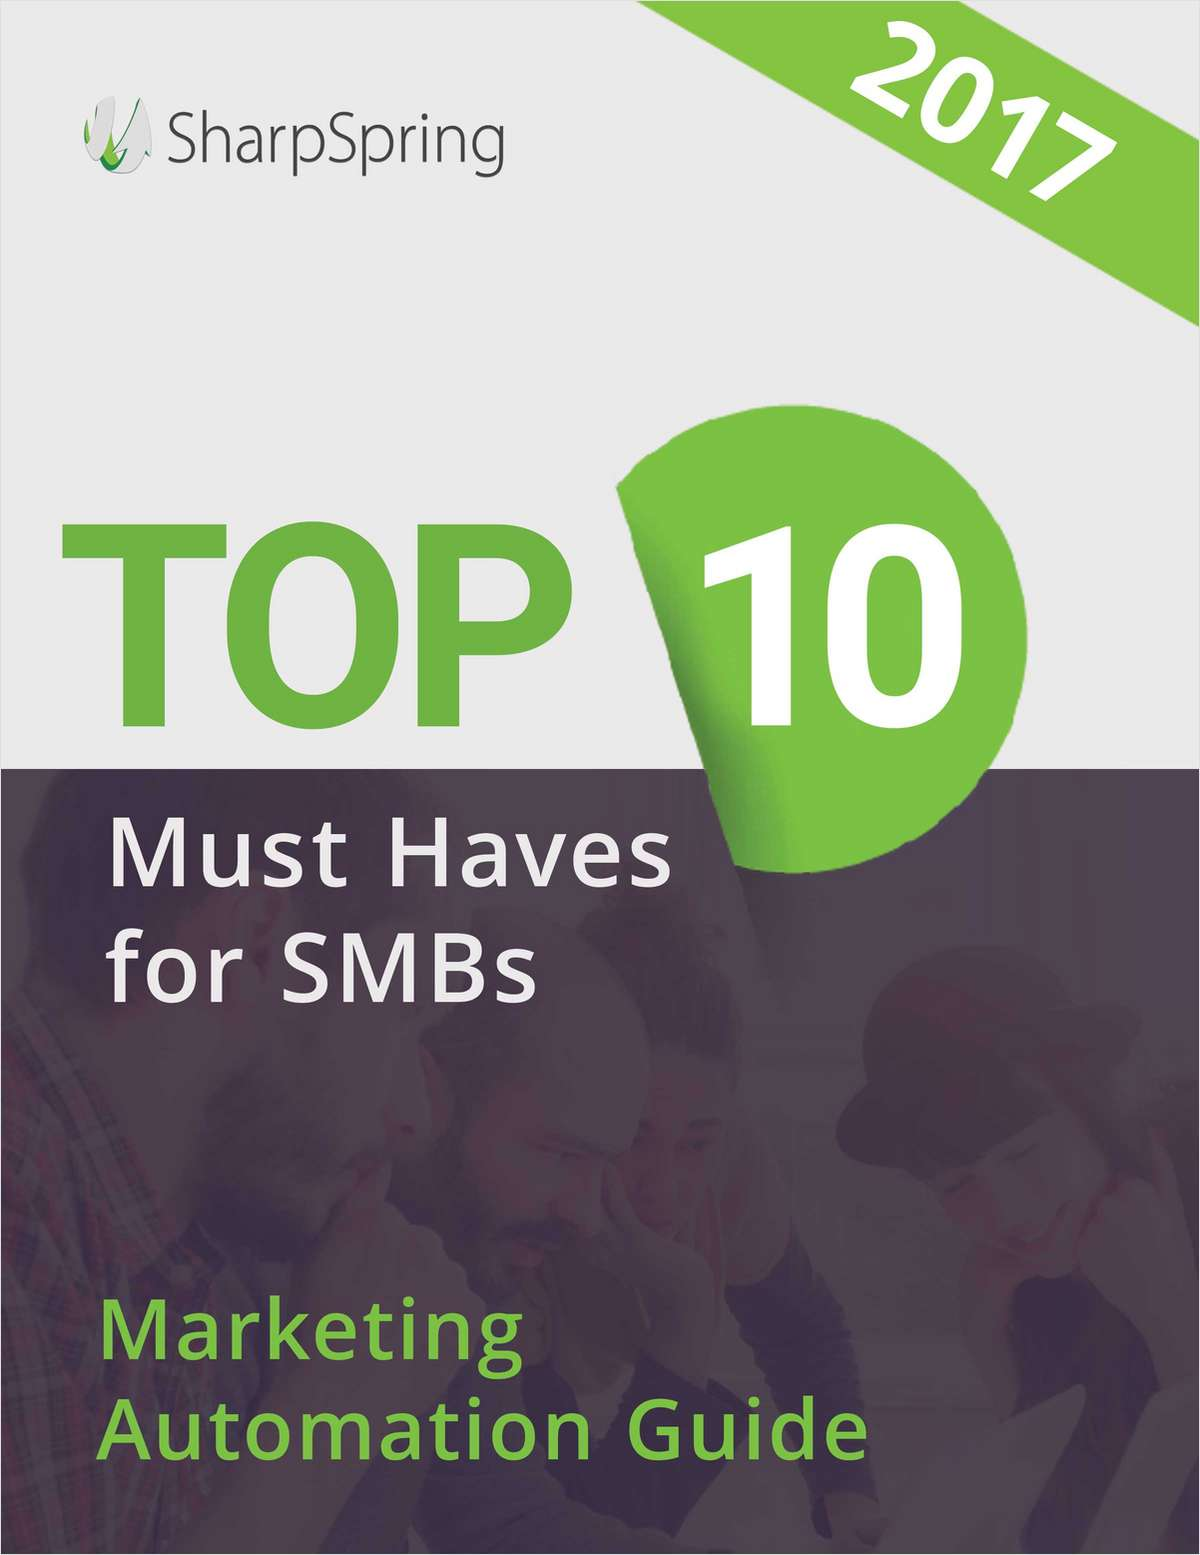 Top 10 Marketing Automation 'Must Haves' for SMBs